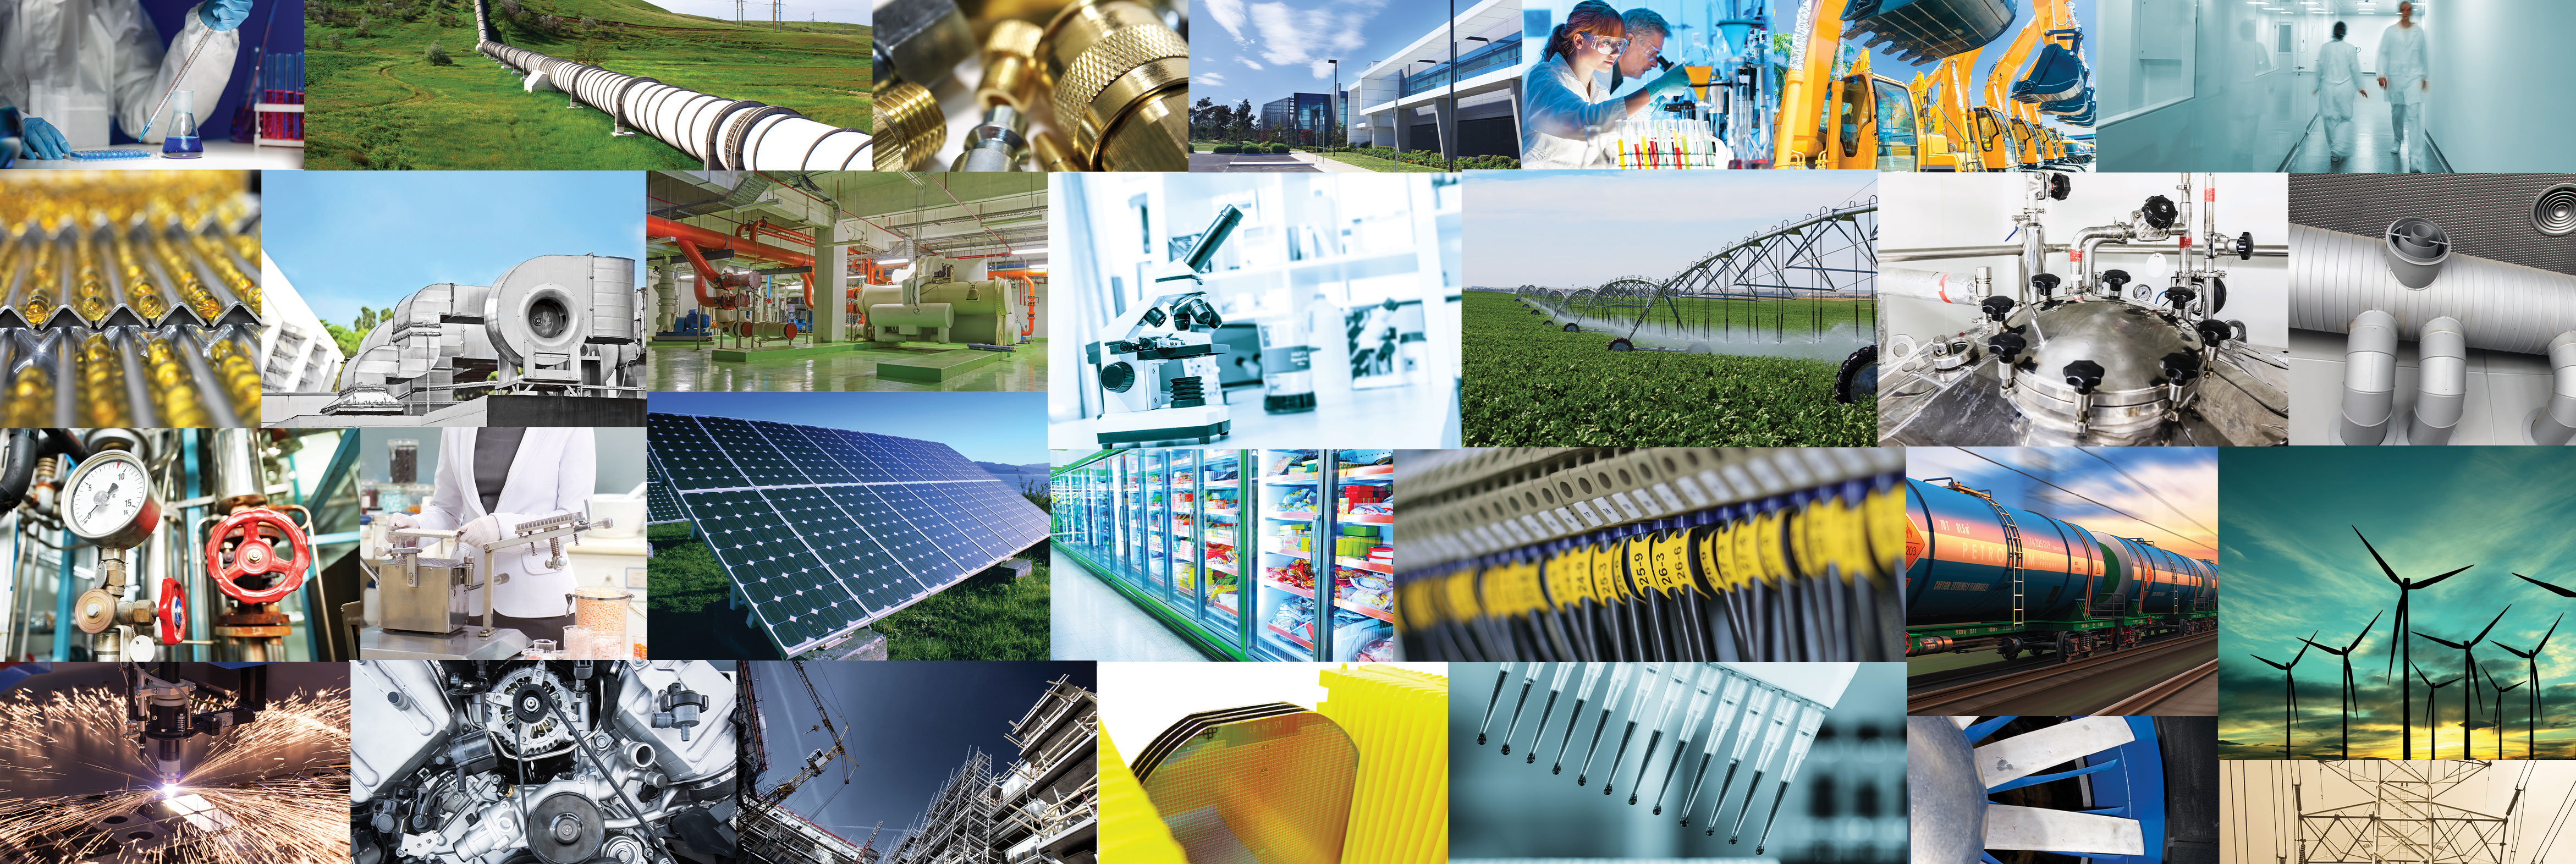 building automation general industrial semiconductor manufacturing fiber optics scales